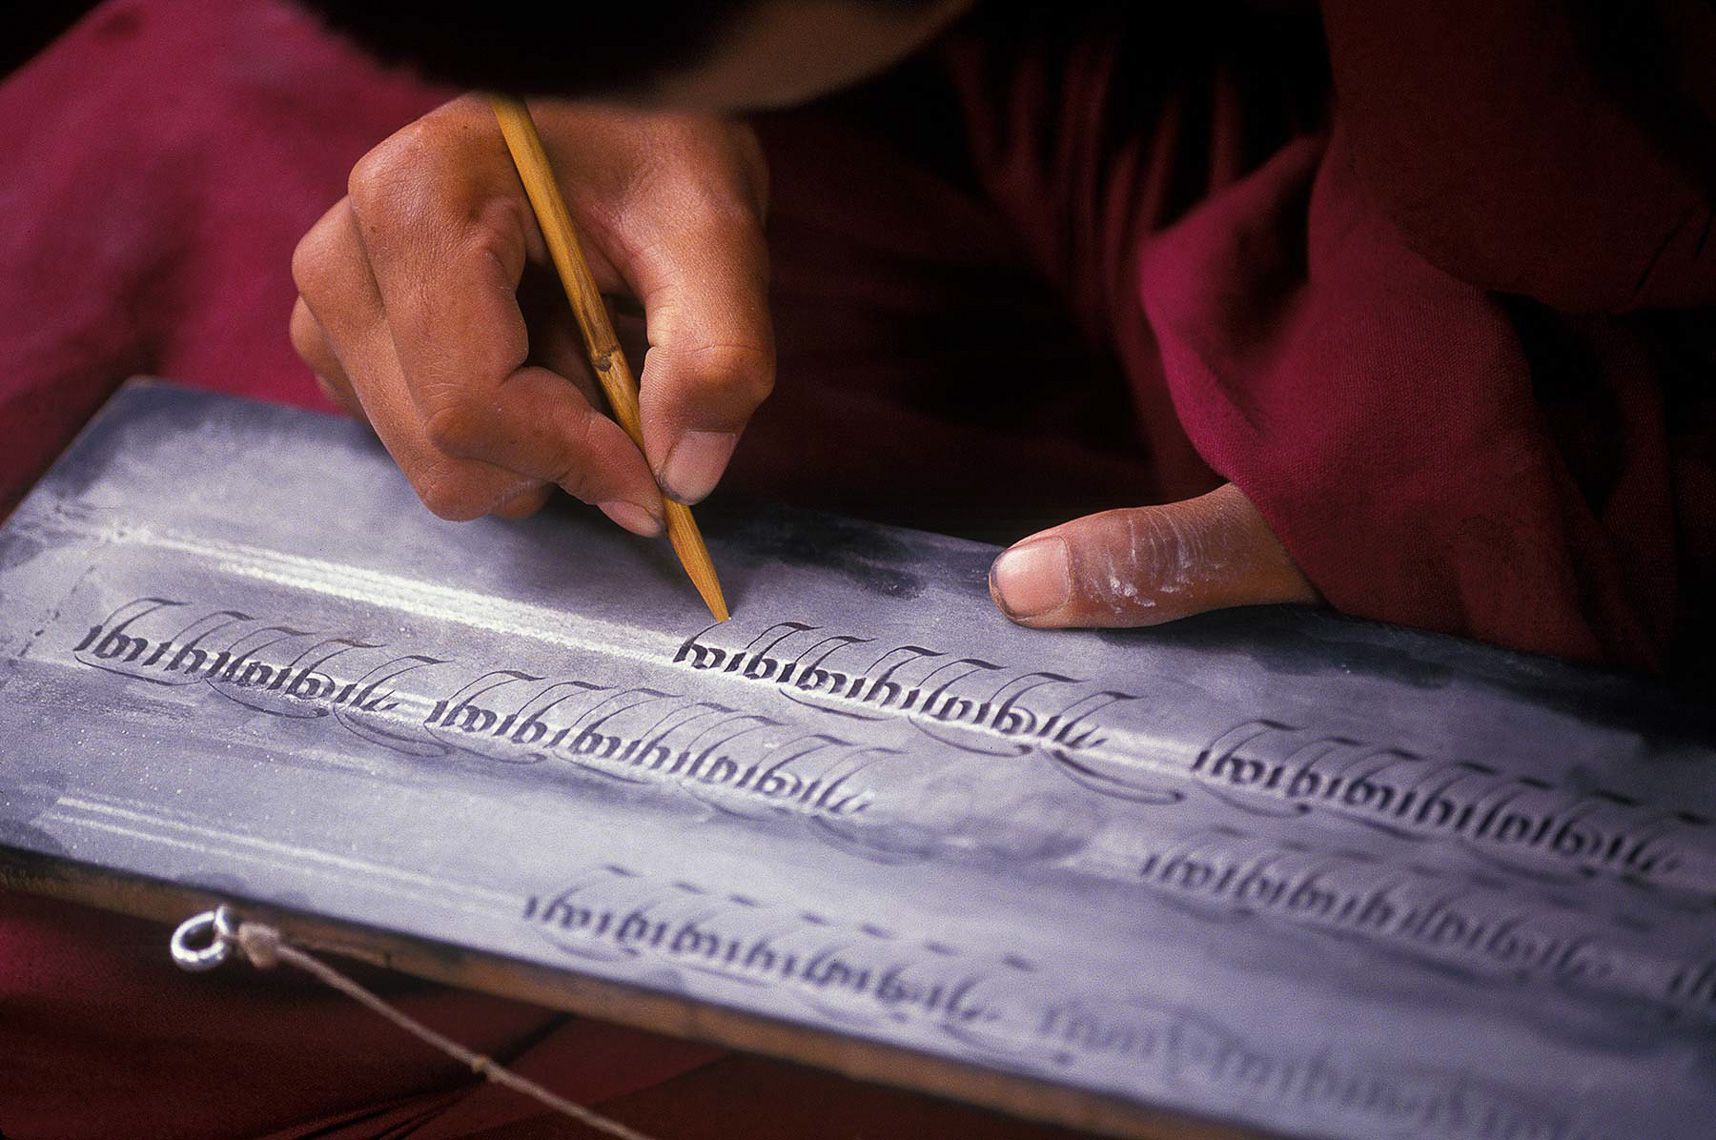 059-China-Monk-writing